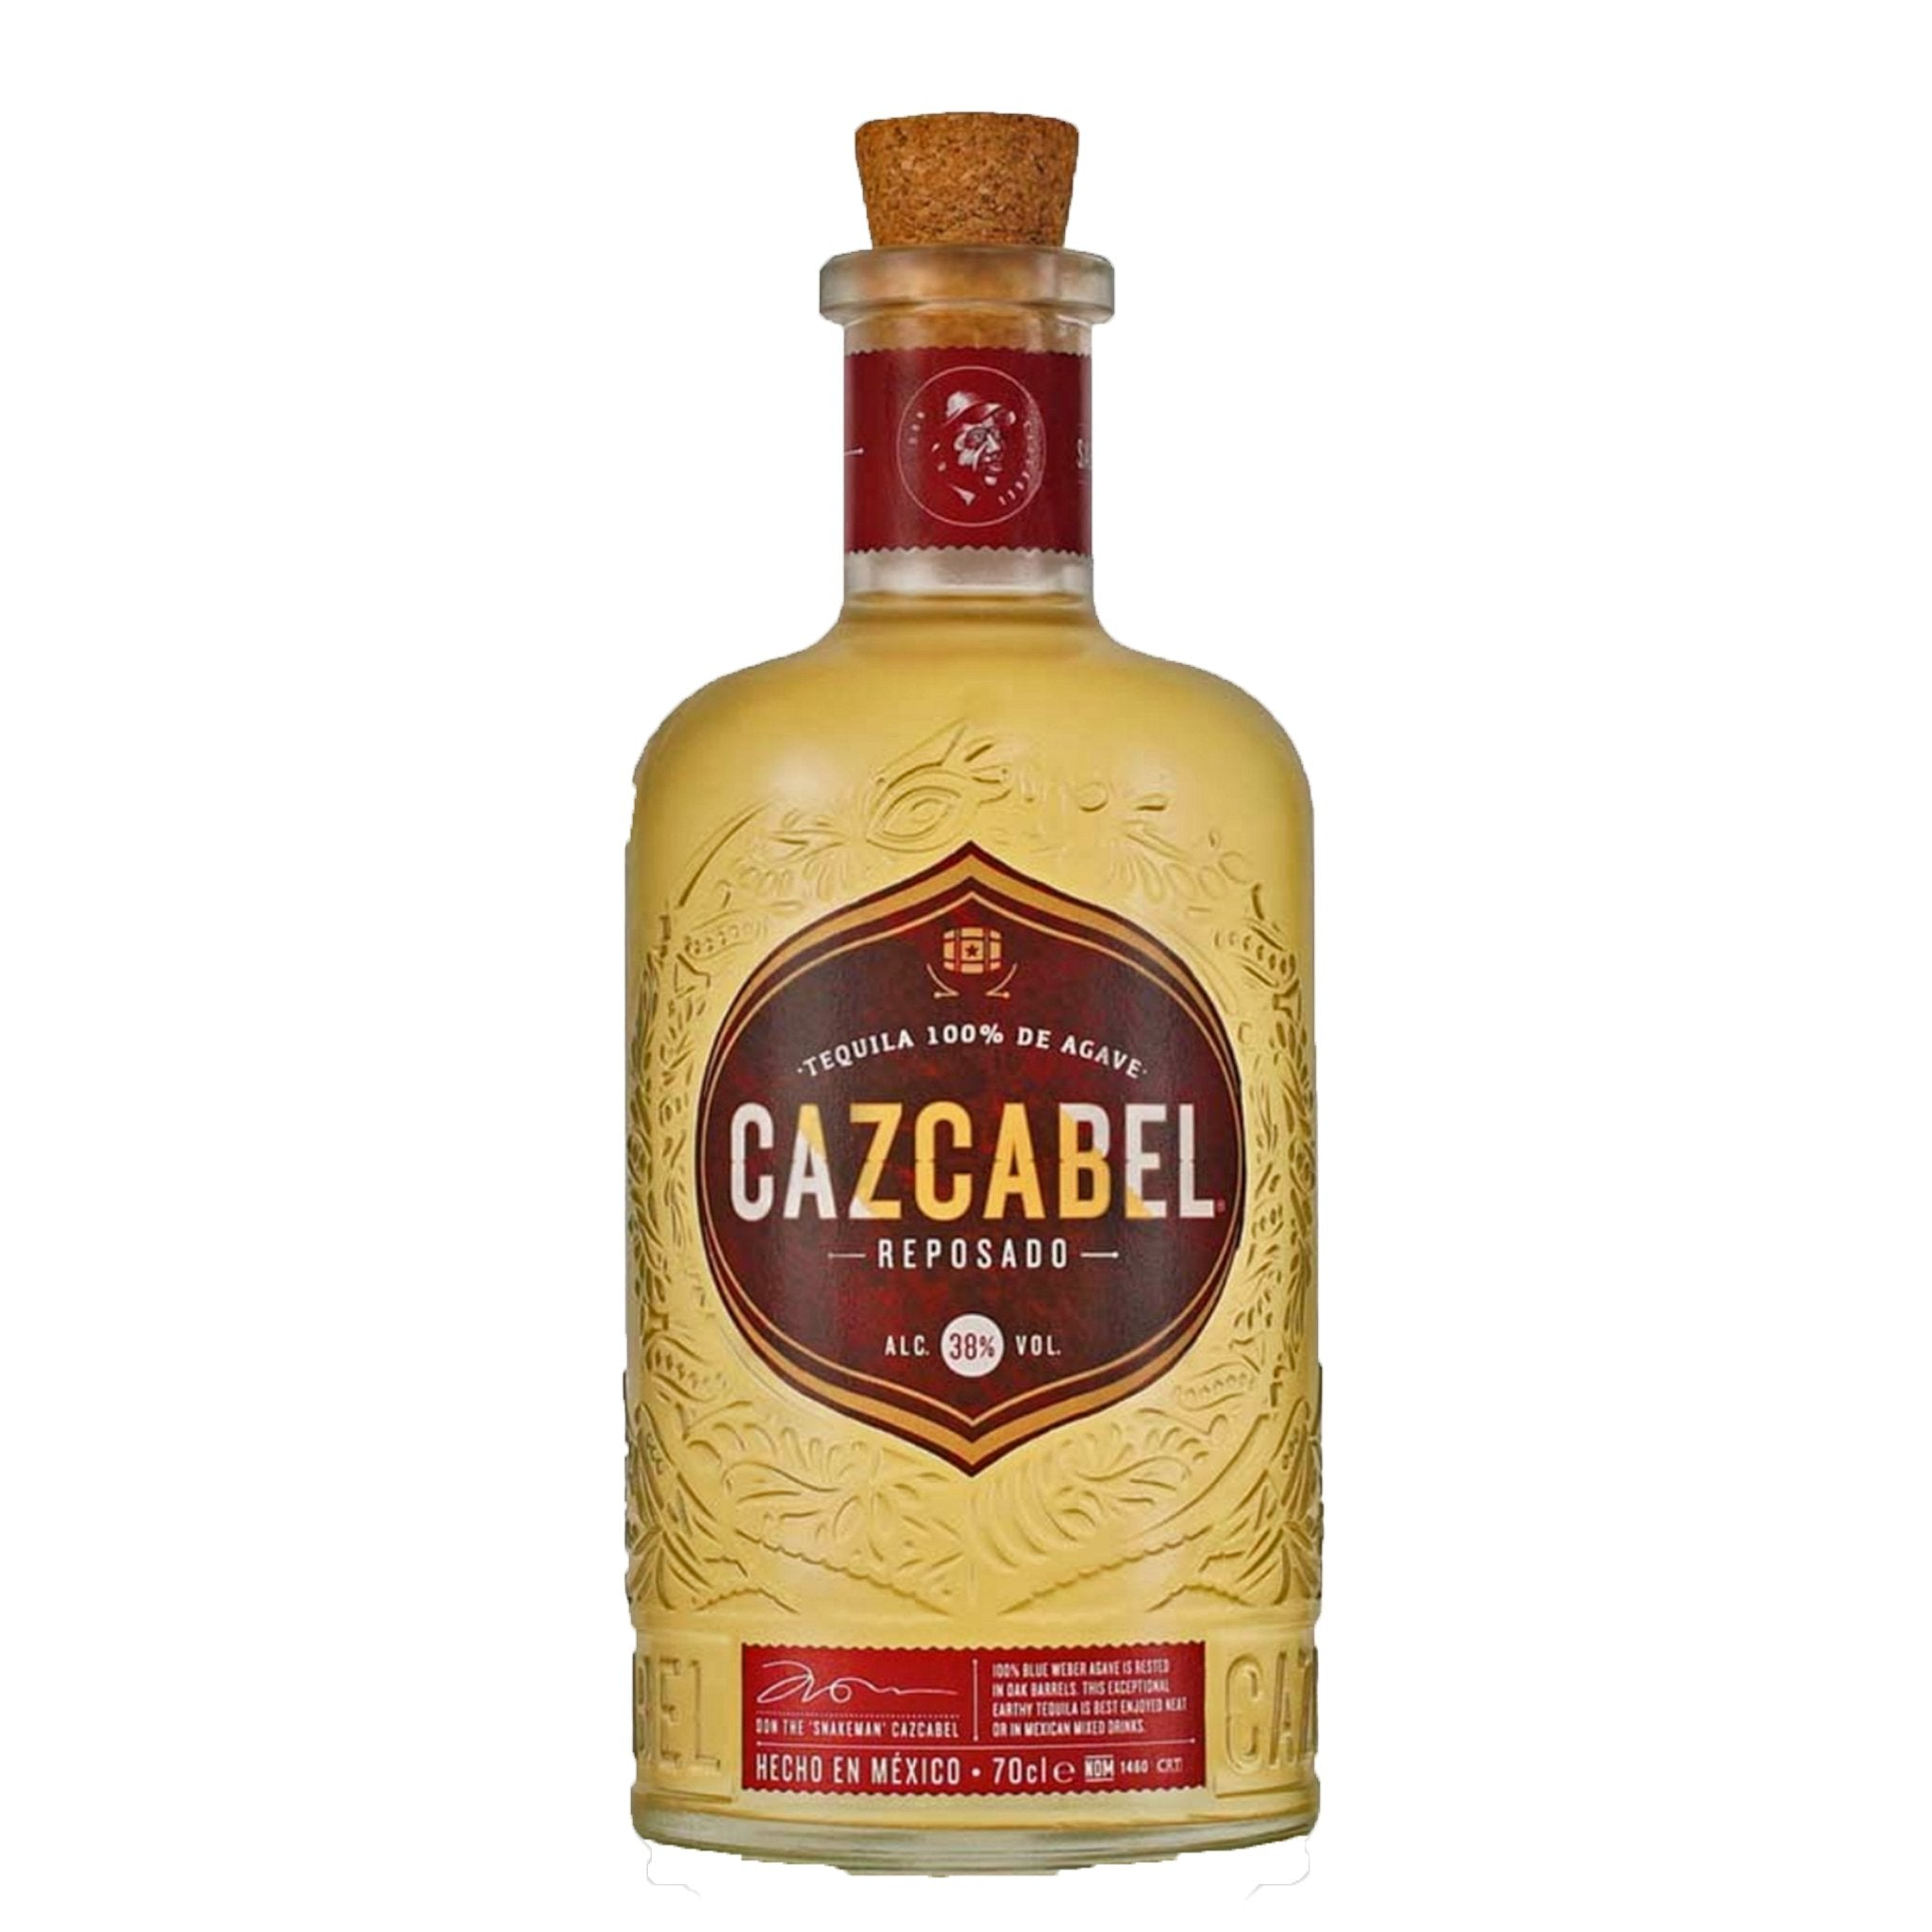 Cazcabel Tequila Reposdao 70cl, Alcoholic Beverages by Drinks Shop